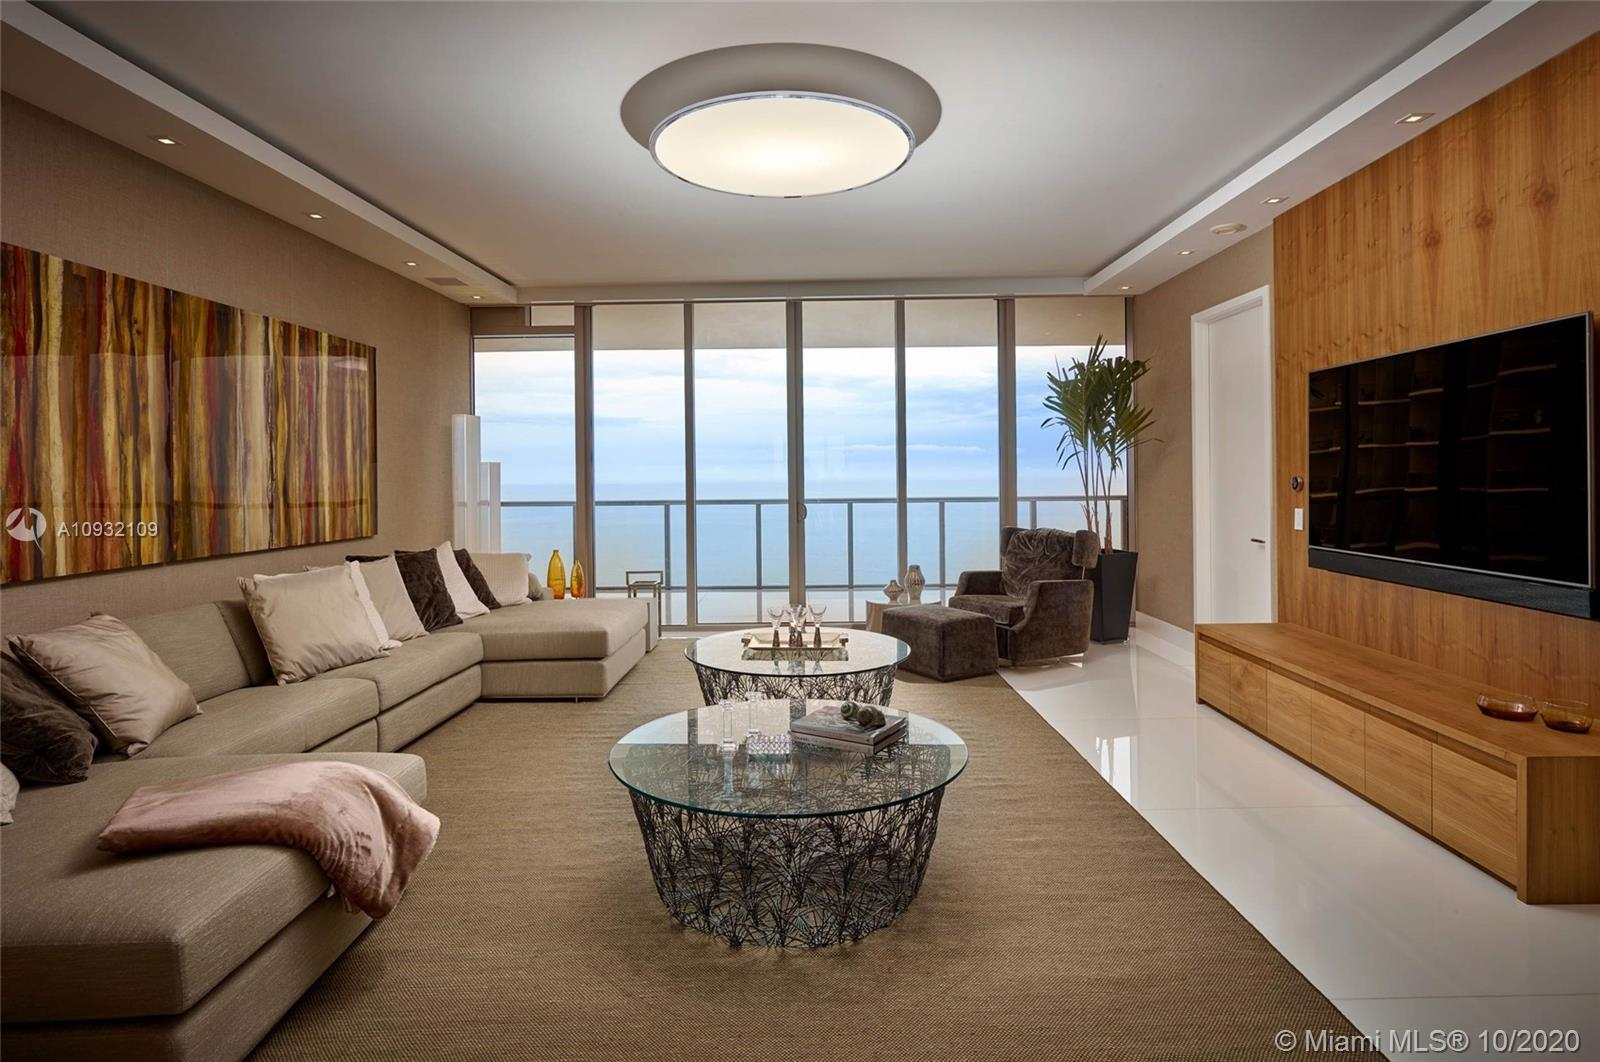 Immaculate Residence Custom Designed available at St Regis Bal Harbour. Enjoy Direct Ocean and Panor